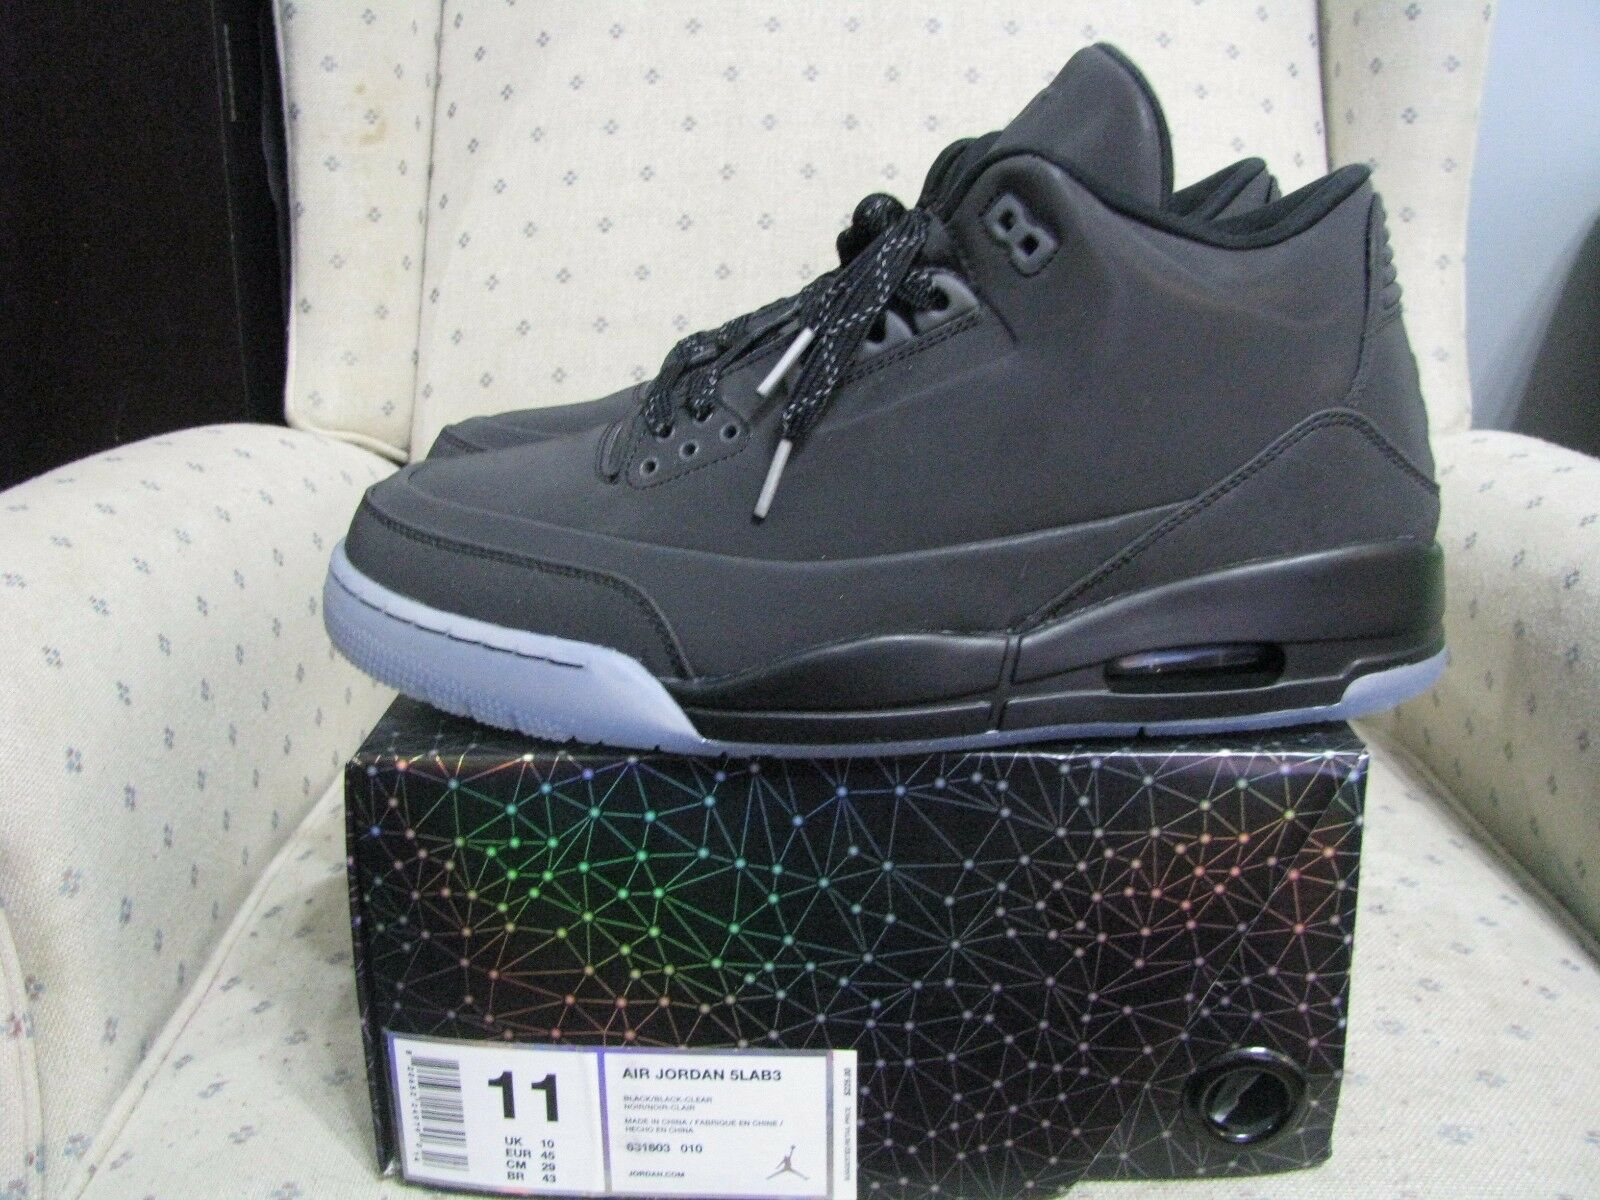 nike zement air jordan retro - 3 5lab3 schwarz spiegelnde zement nike graurote true blue sz. 9ebb72